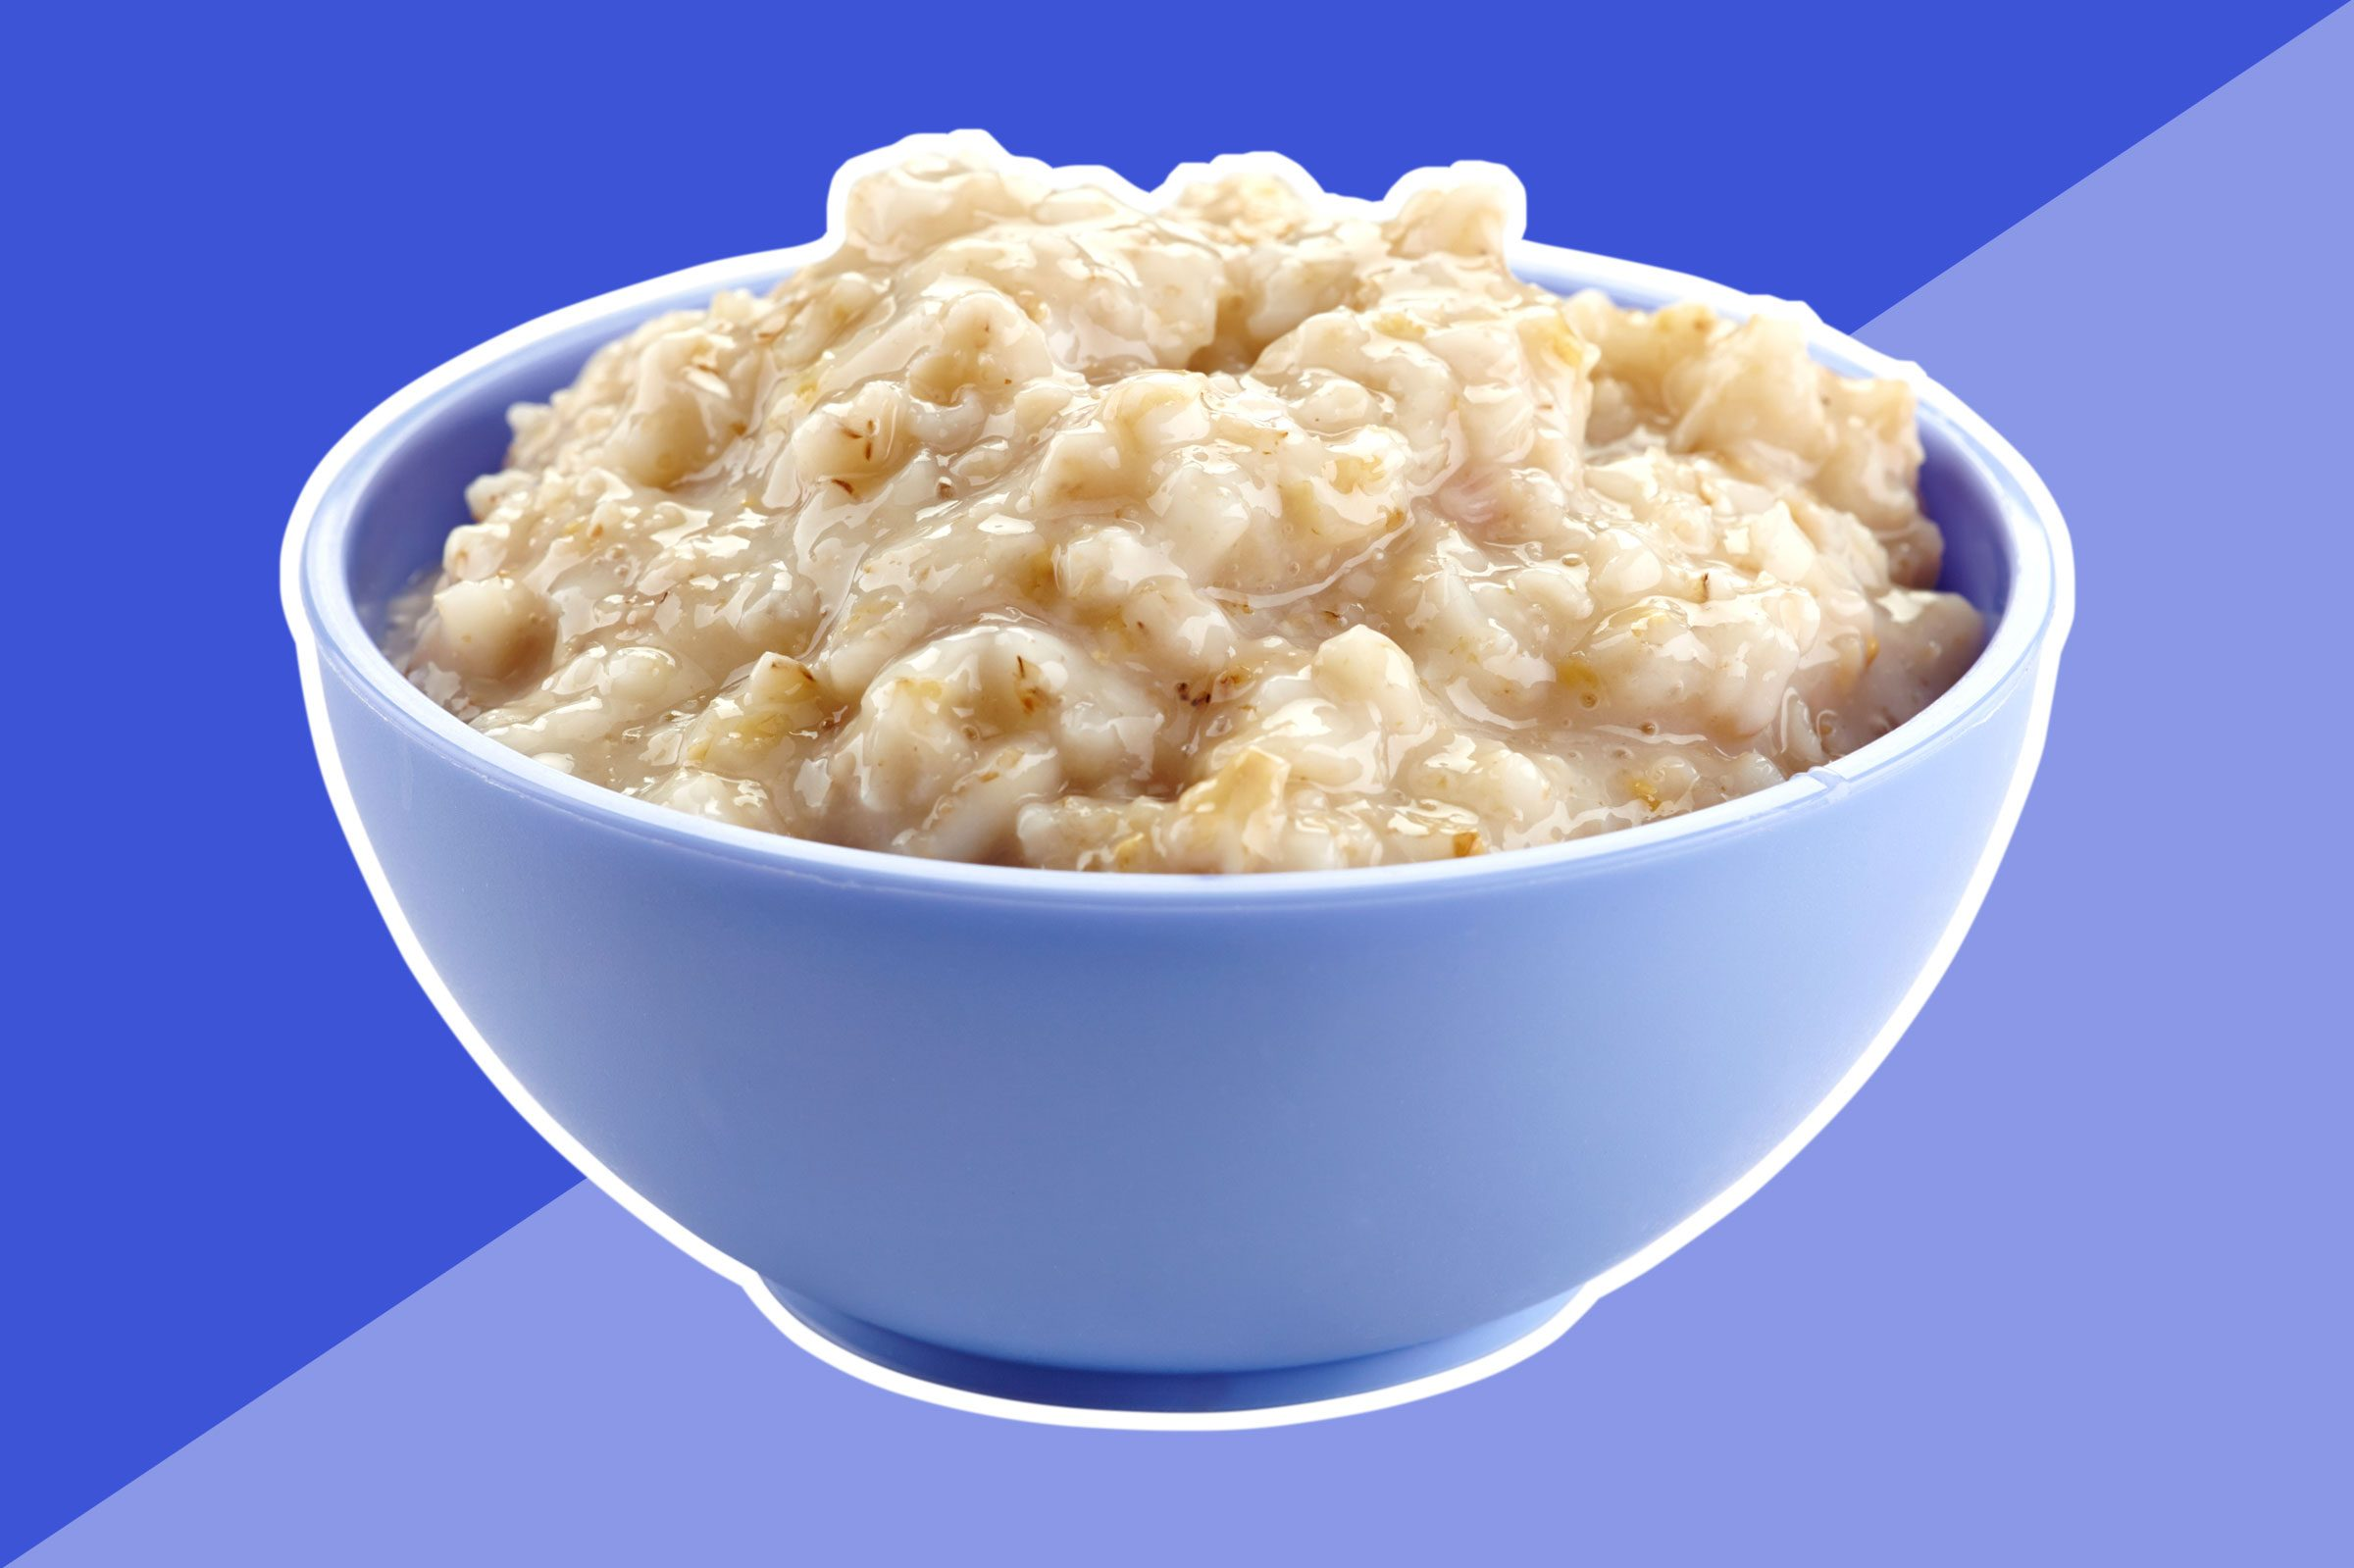 10 foods that all diabetics should avoid - Healthy Carb Oatmeal